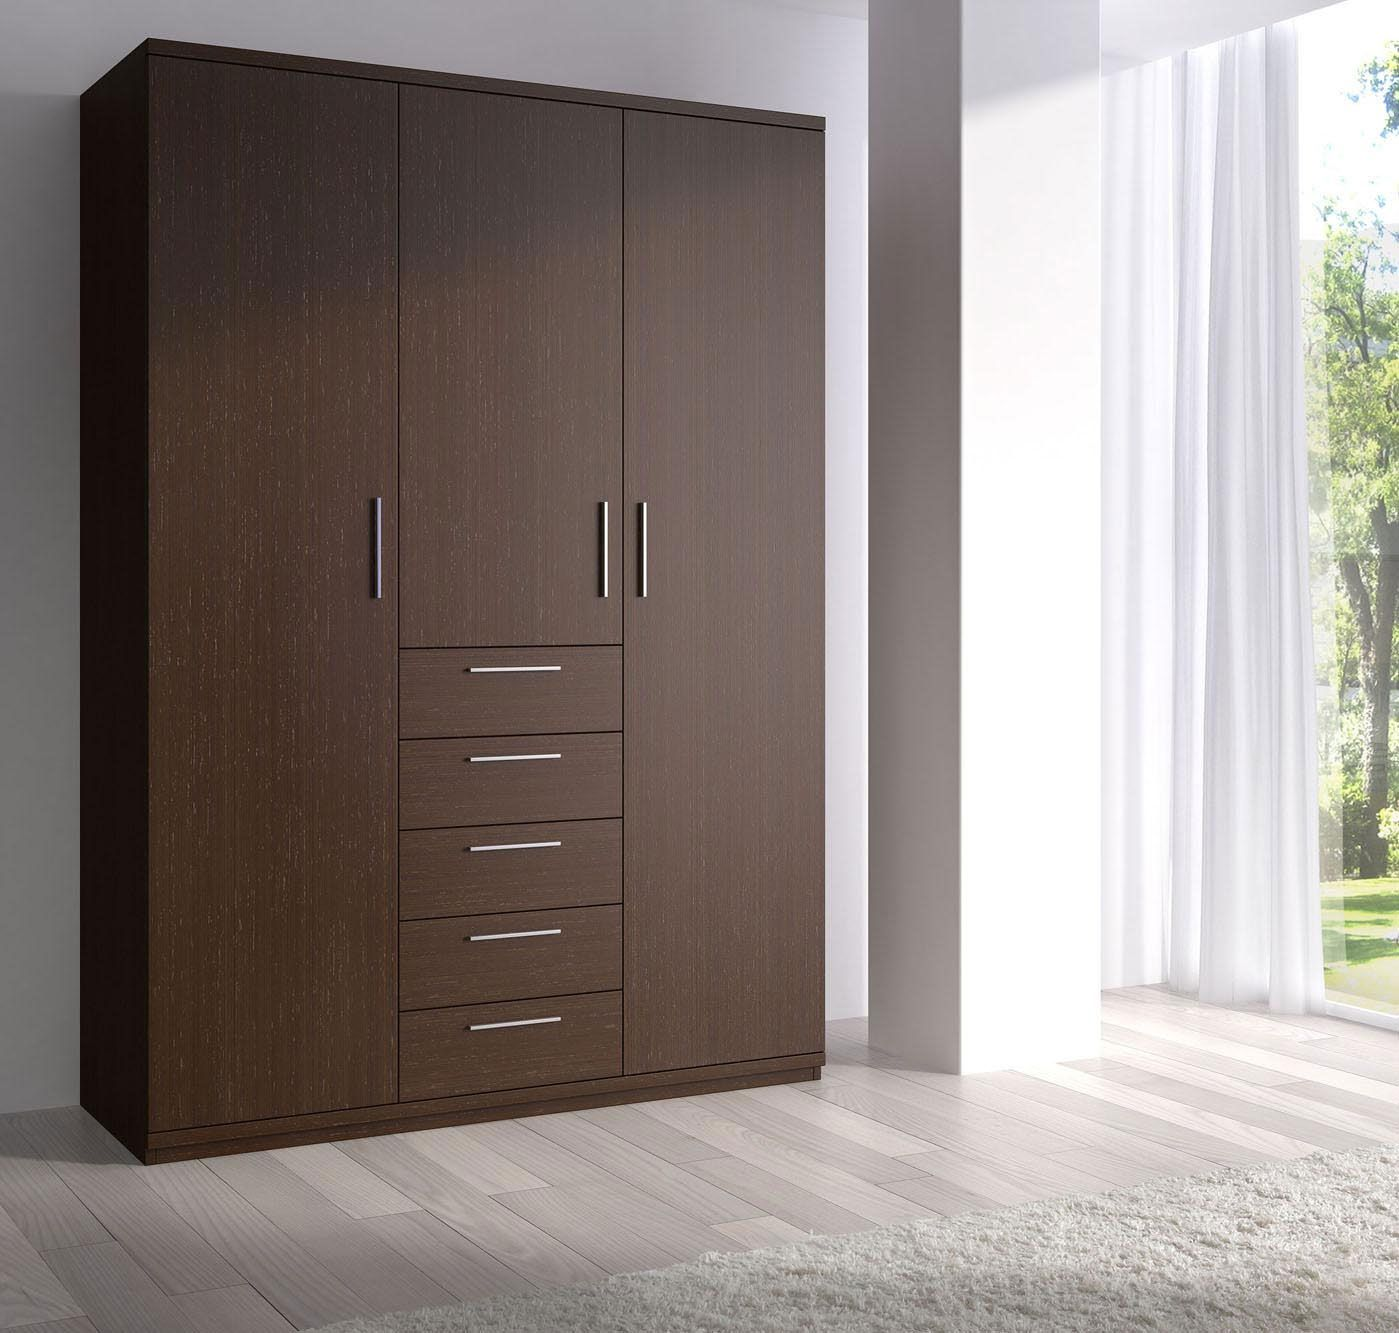 Bedroom classy wooden closet wardrobe ideas with modern for Wardrobe designs for small bedroom